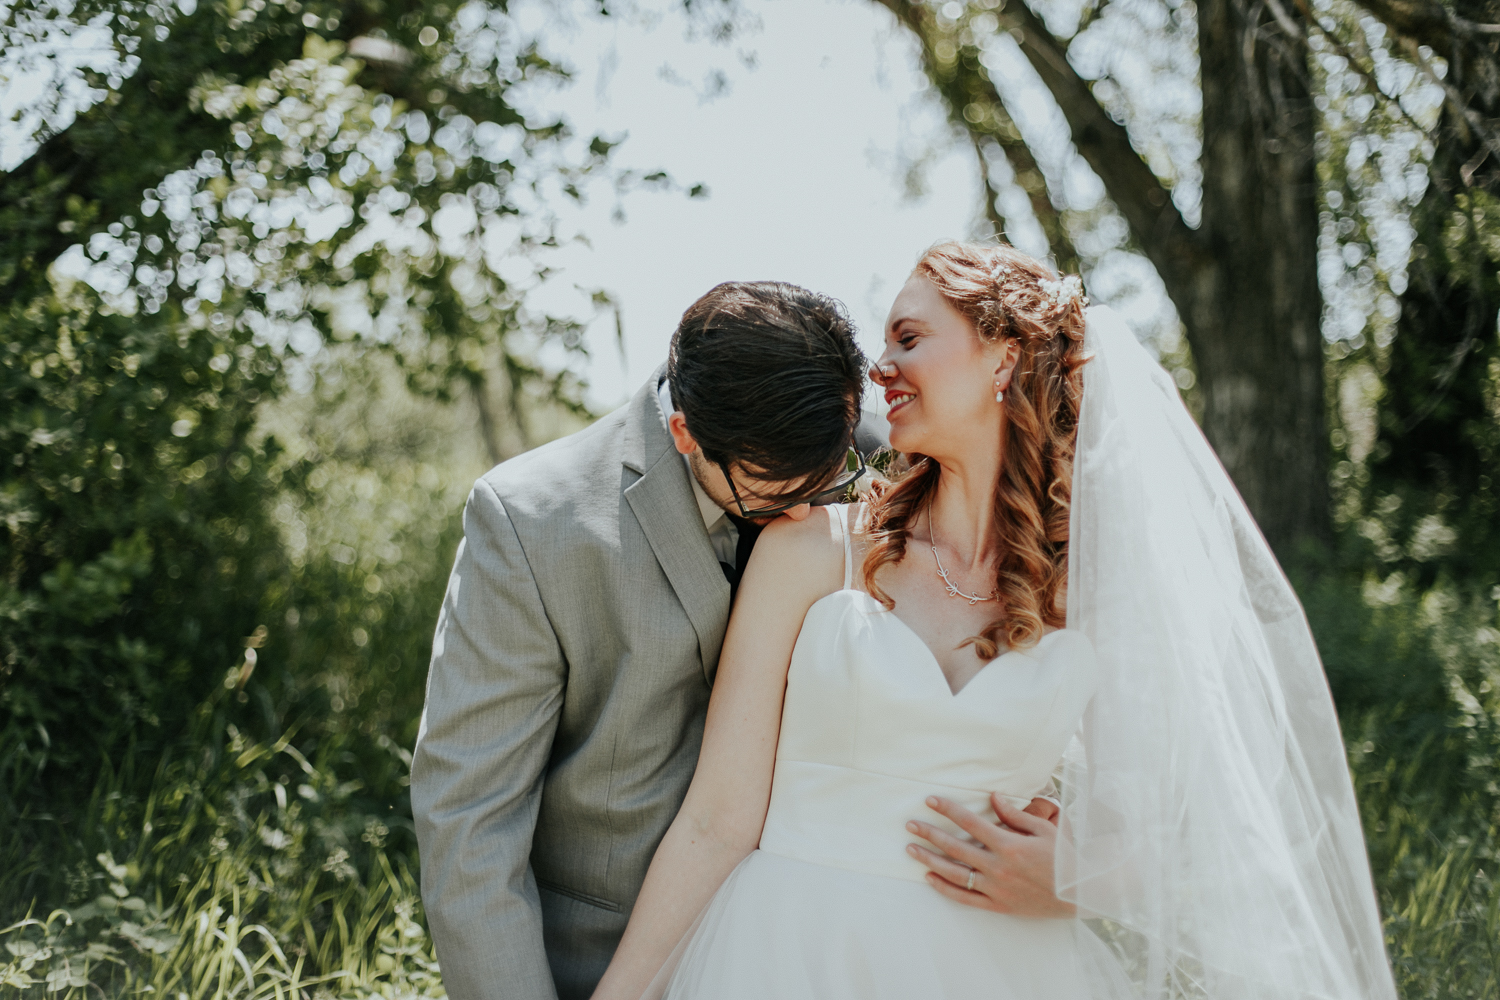 lethbridge-wedding-photographer-love-and-be-loved-photography-dan-tynnea-picture-image-photo-57.jpg